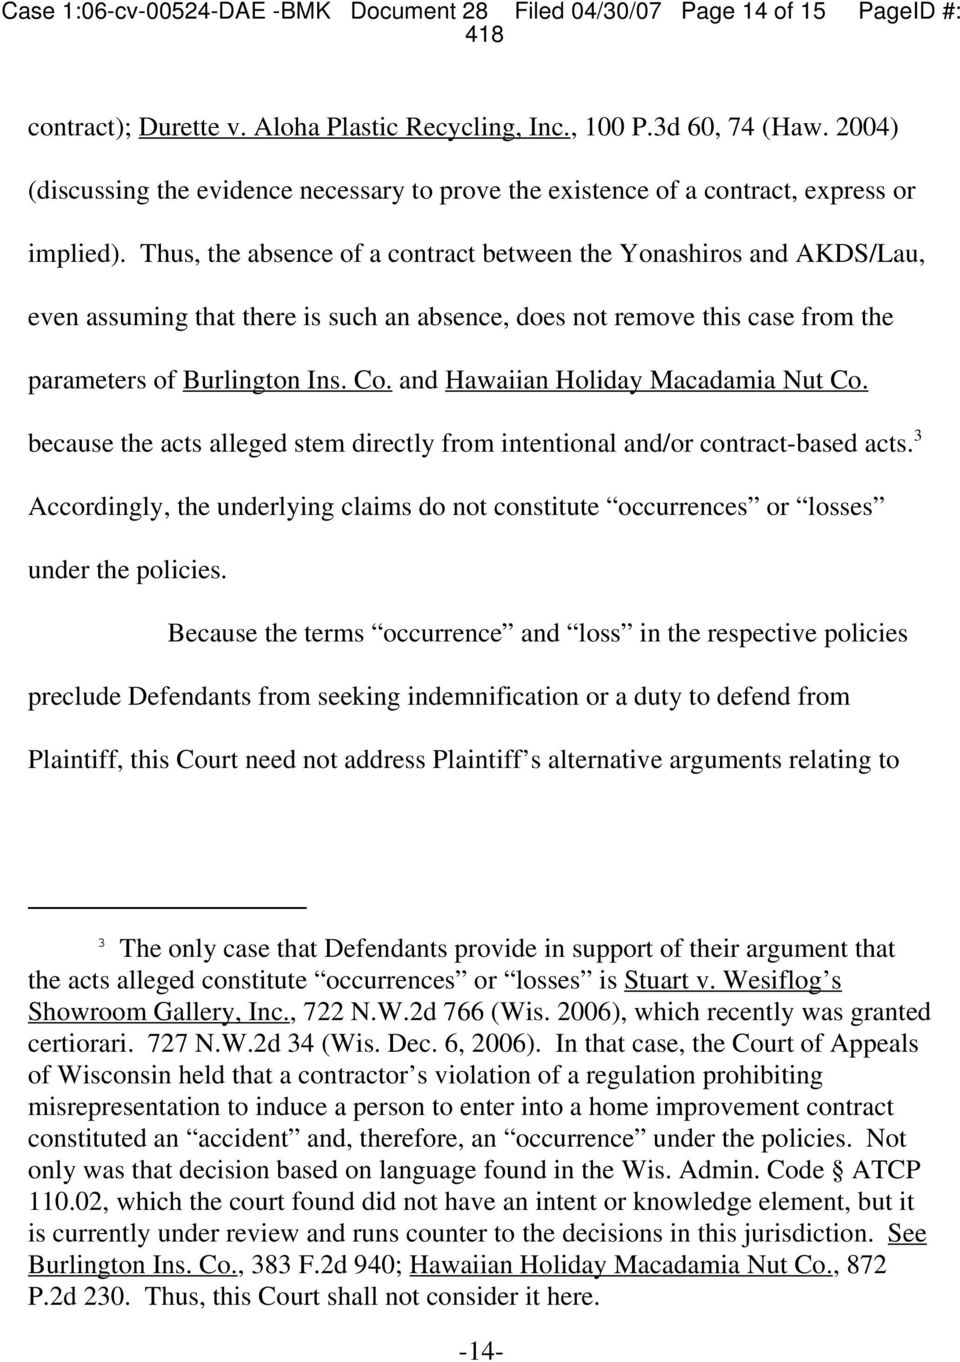 Thus, the absence of a contract between the Yonashiros and AKDS/Lau, even assuming that there is such an absence, does not remove this case from the parameters of Burlington Ins. Co.